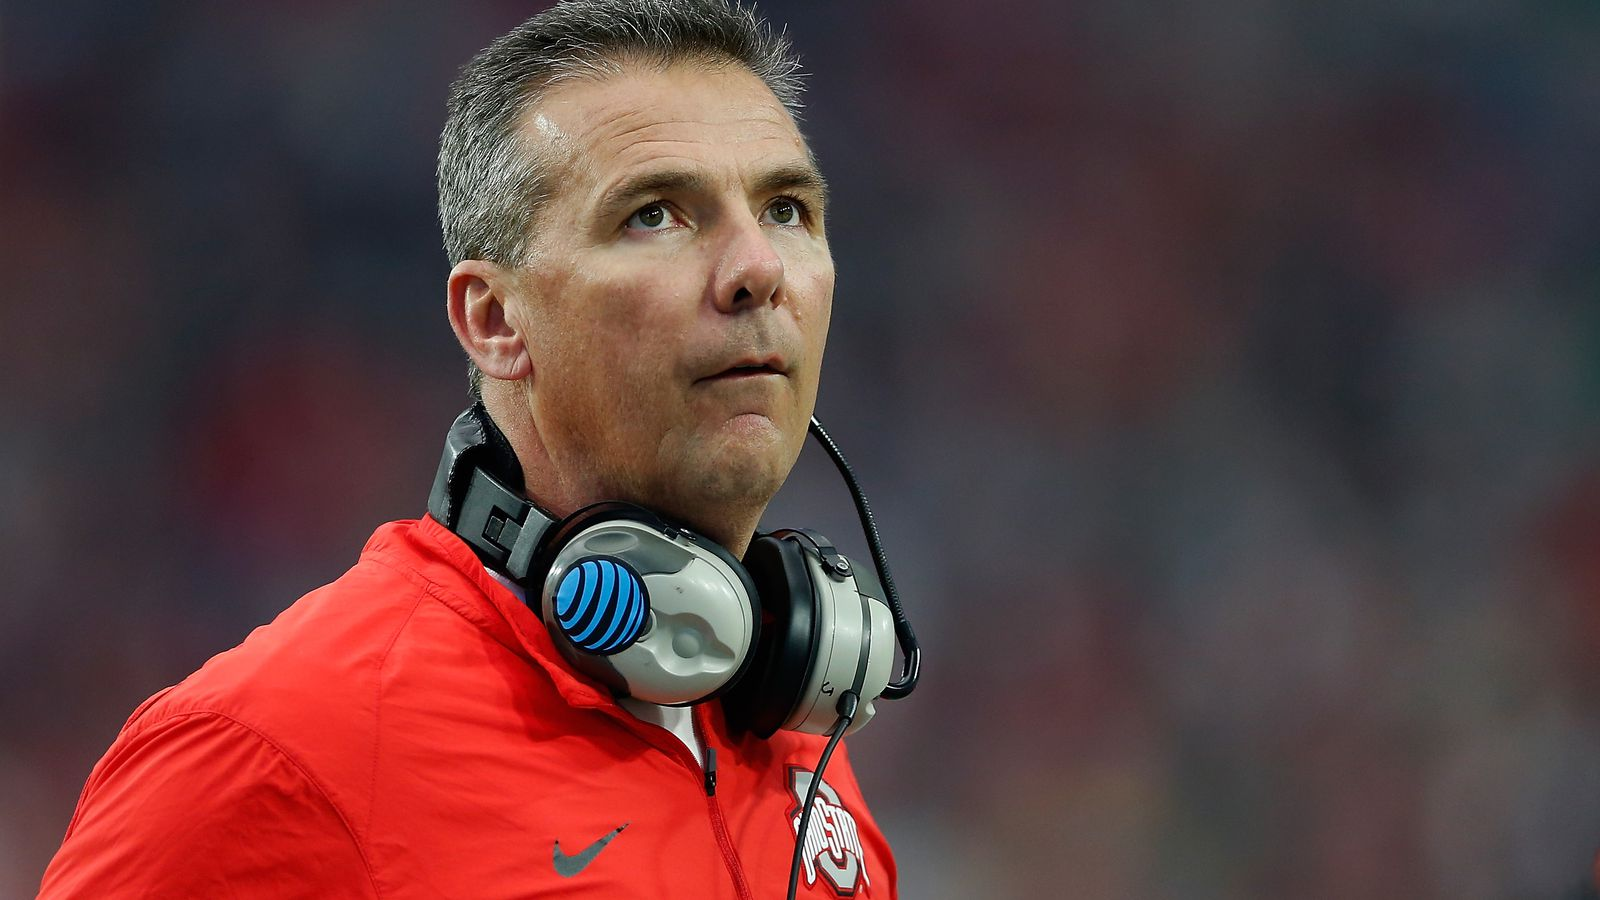 Ohio State closed ranks around the rollout of its football season as the university investigates whether coach Urban Meyer failed to report domestic abuse